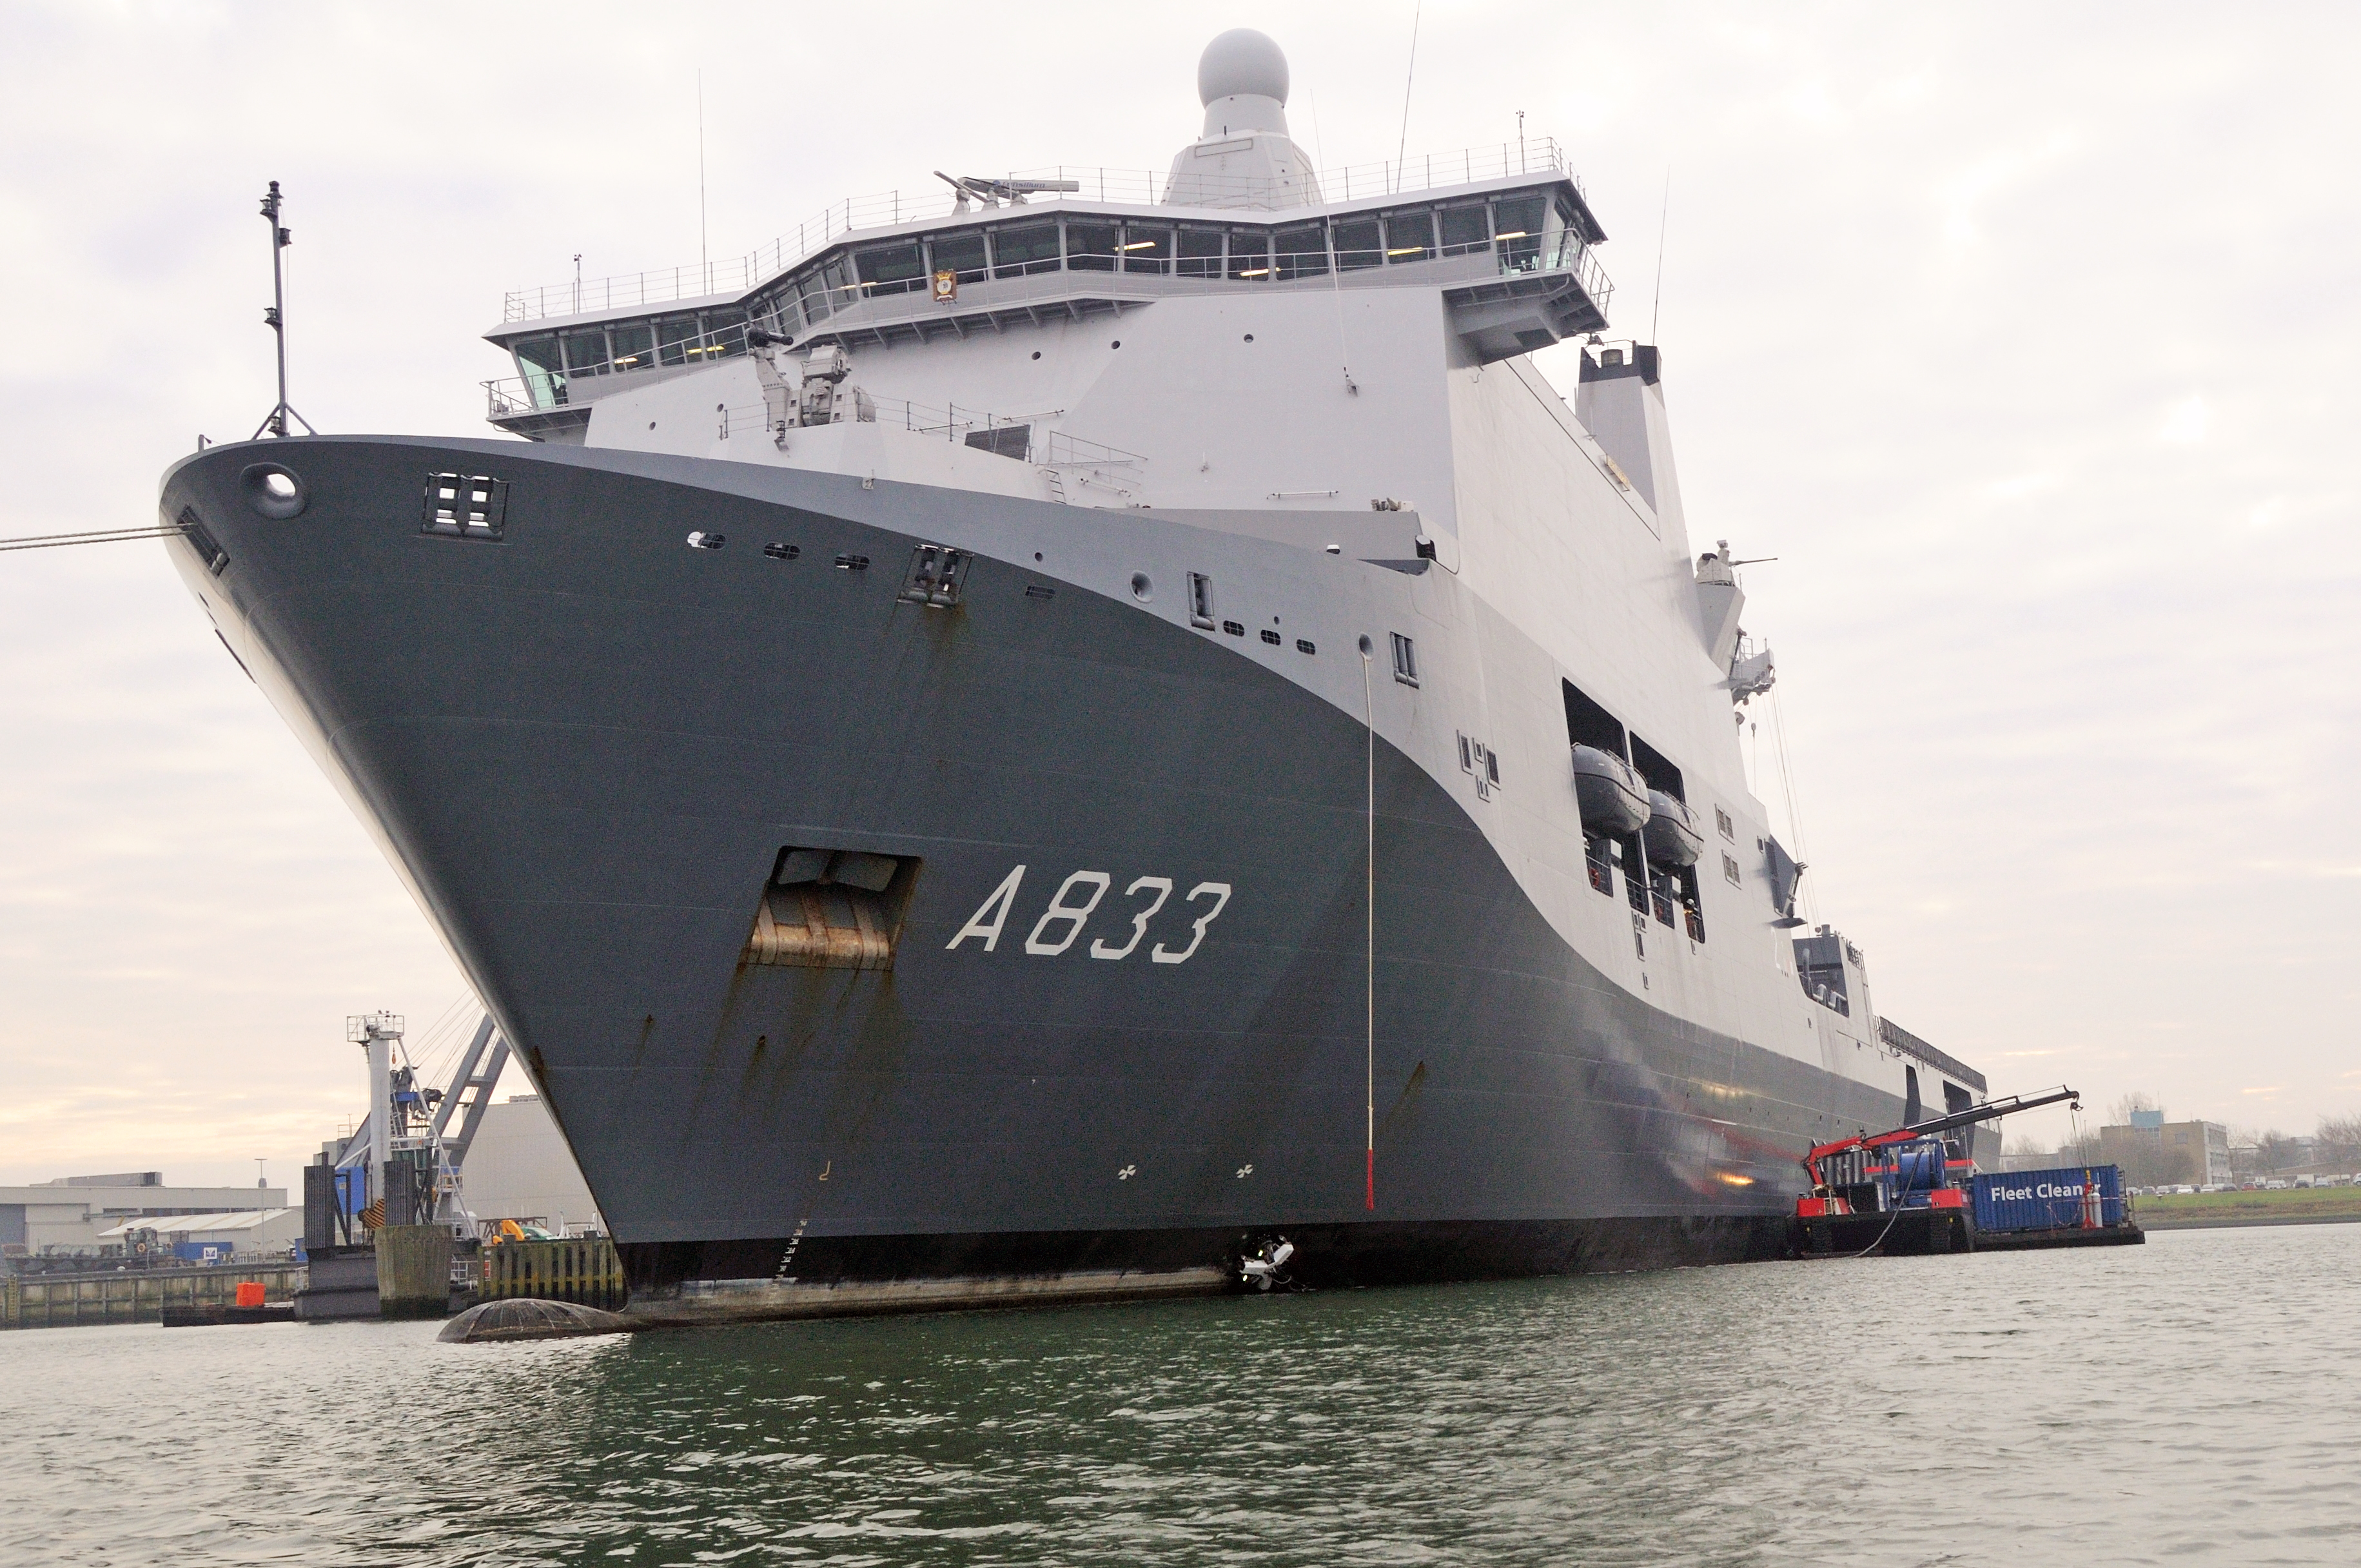 Fleet Cleaner completes first ship hull cleaning - Fleet Cleaner